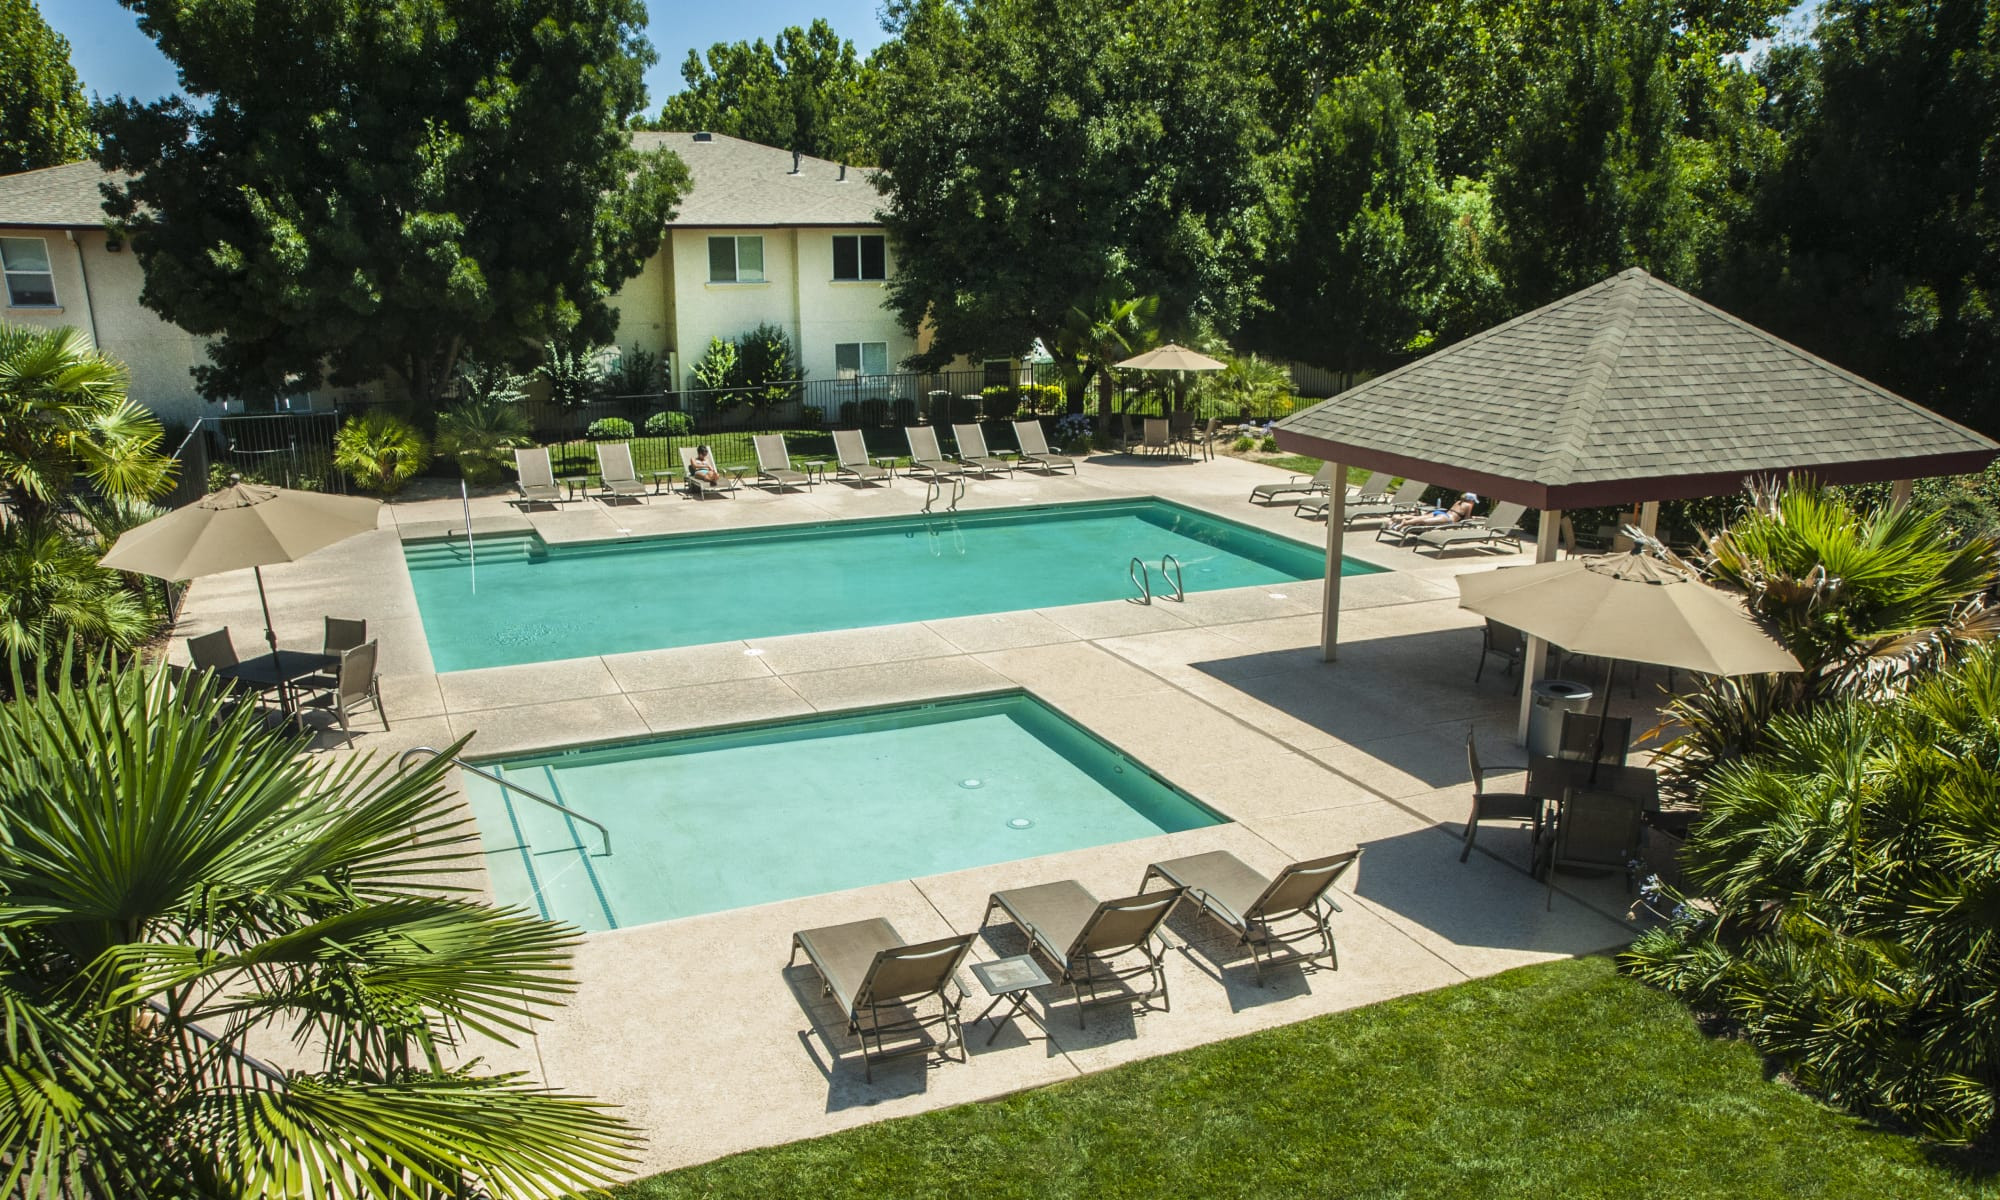 Mission Ranch Apartments in Chico, California